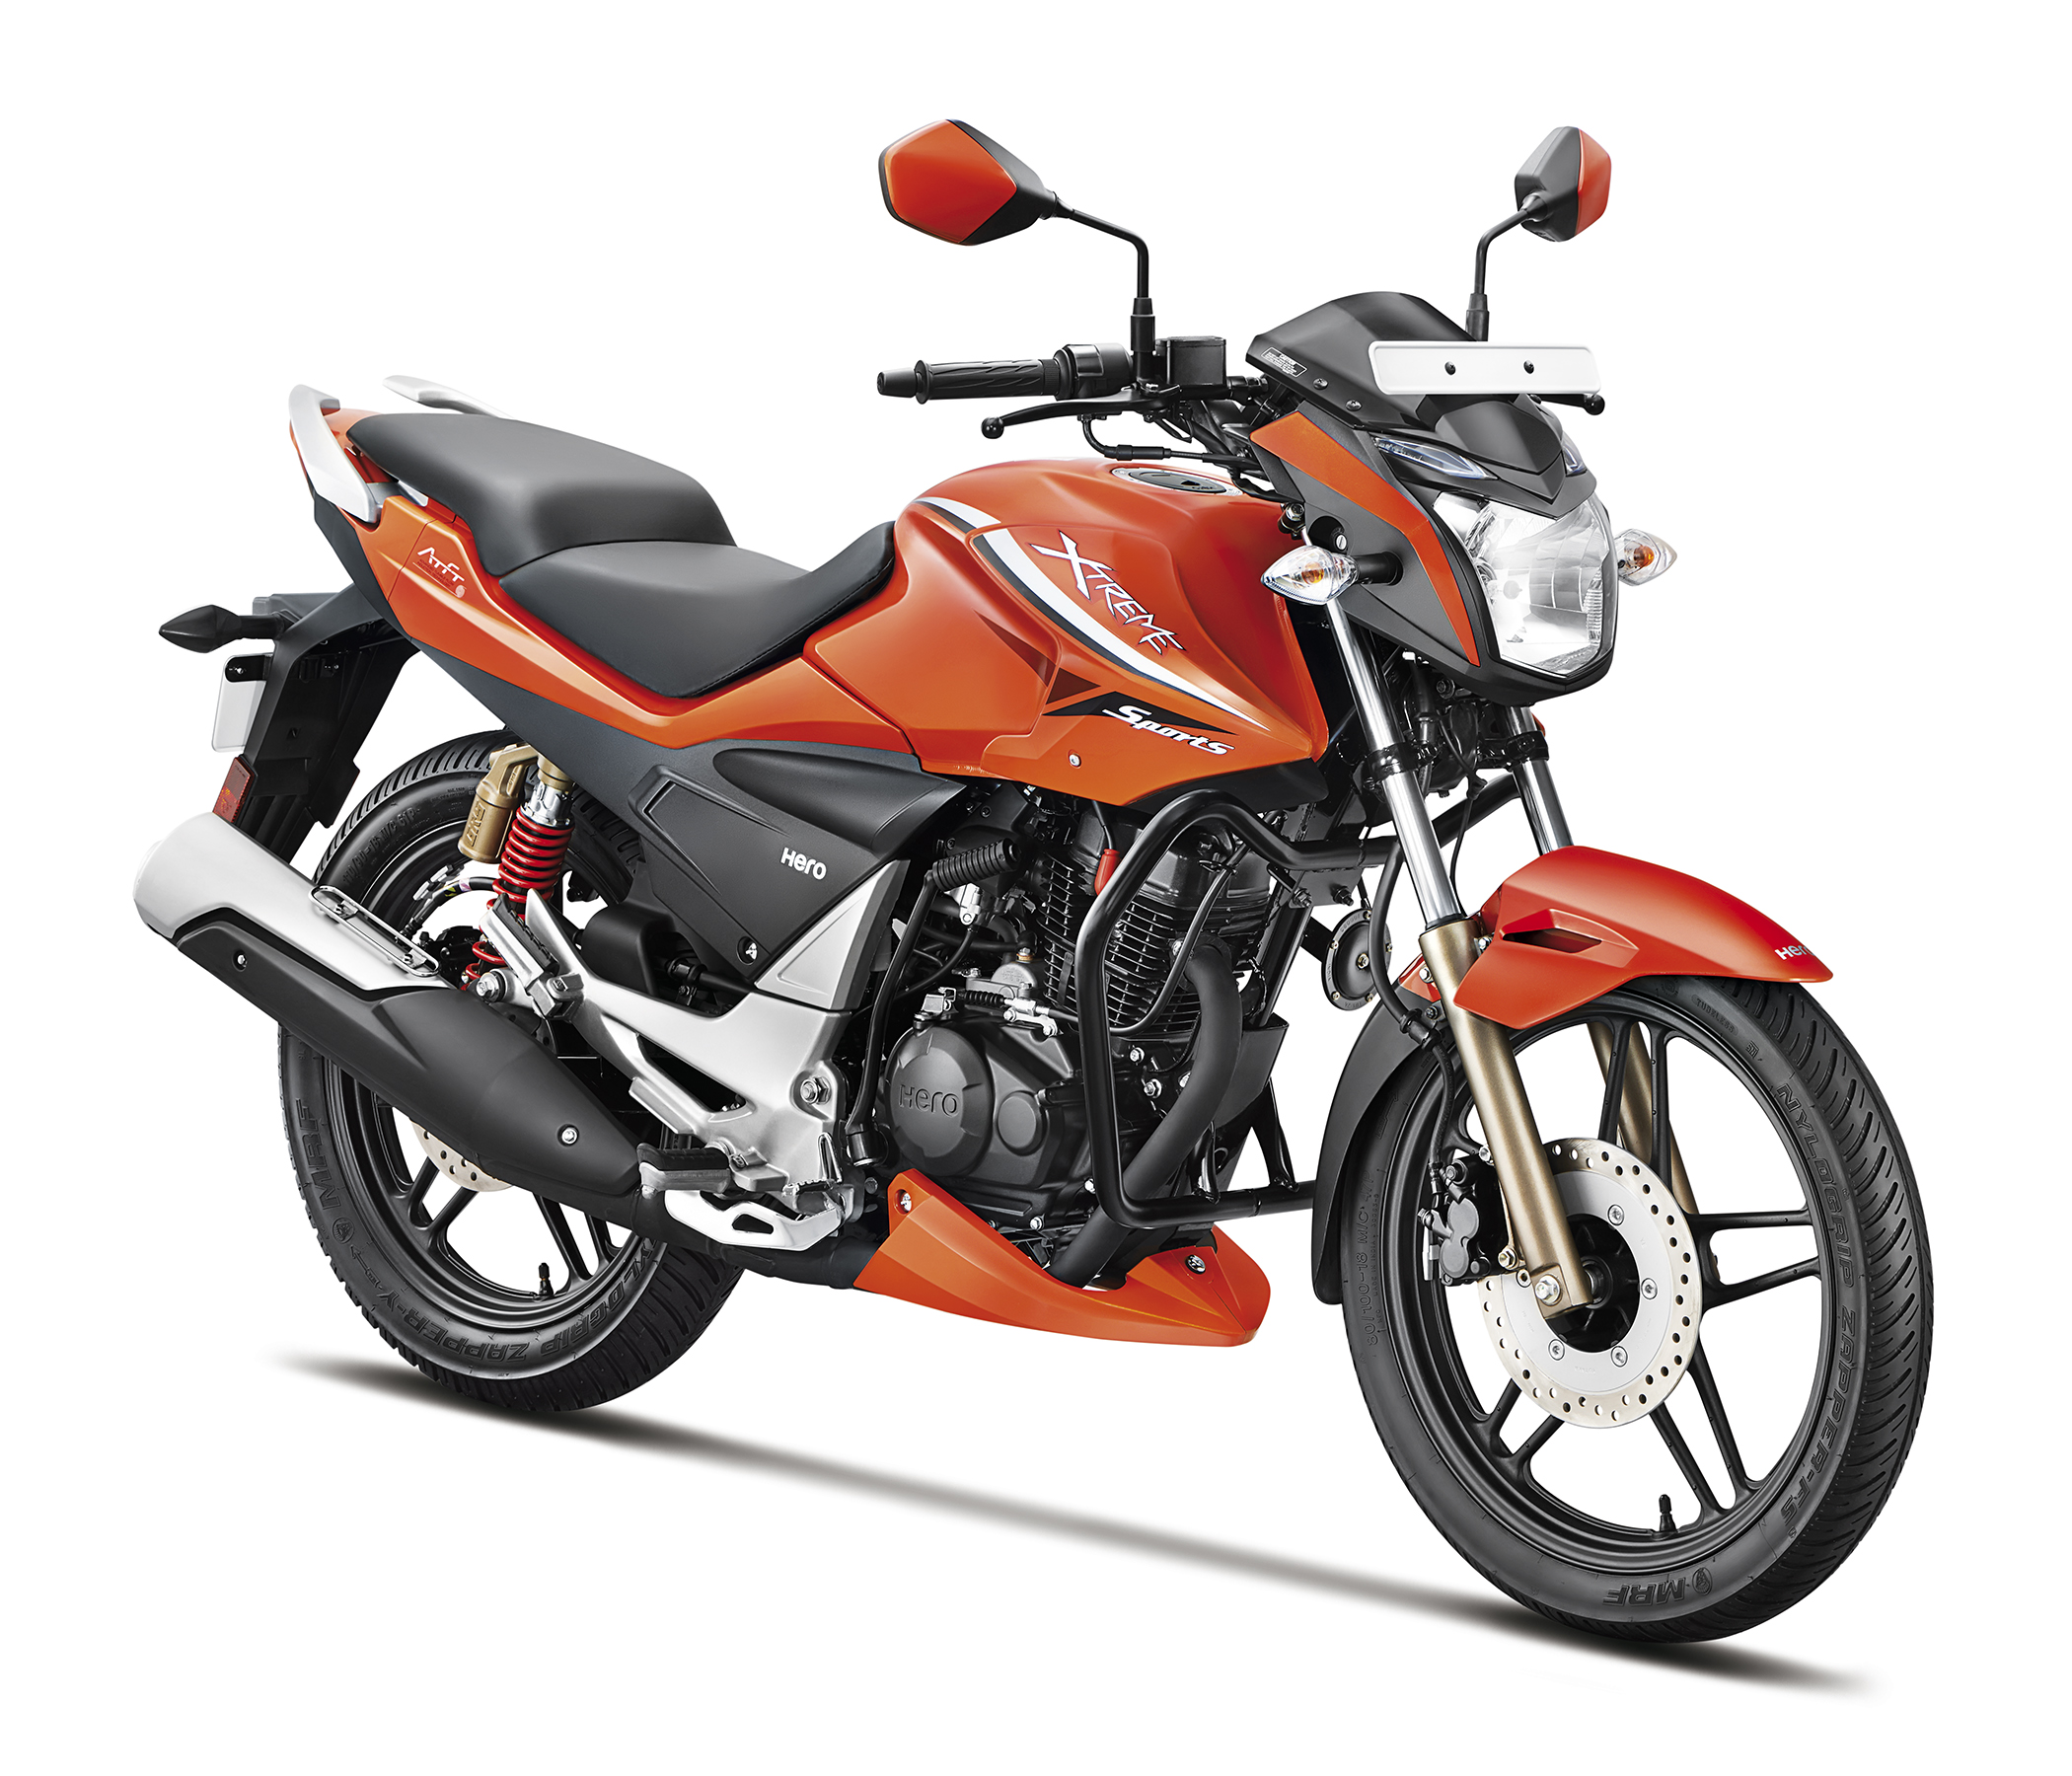 Hero MotoCorp launches Xtreme Sports edition at price of Rs 72,000